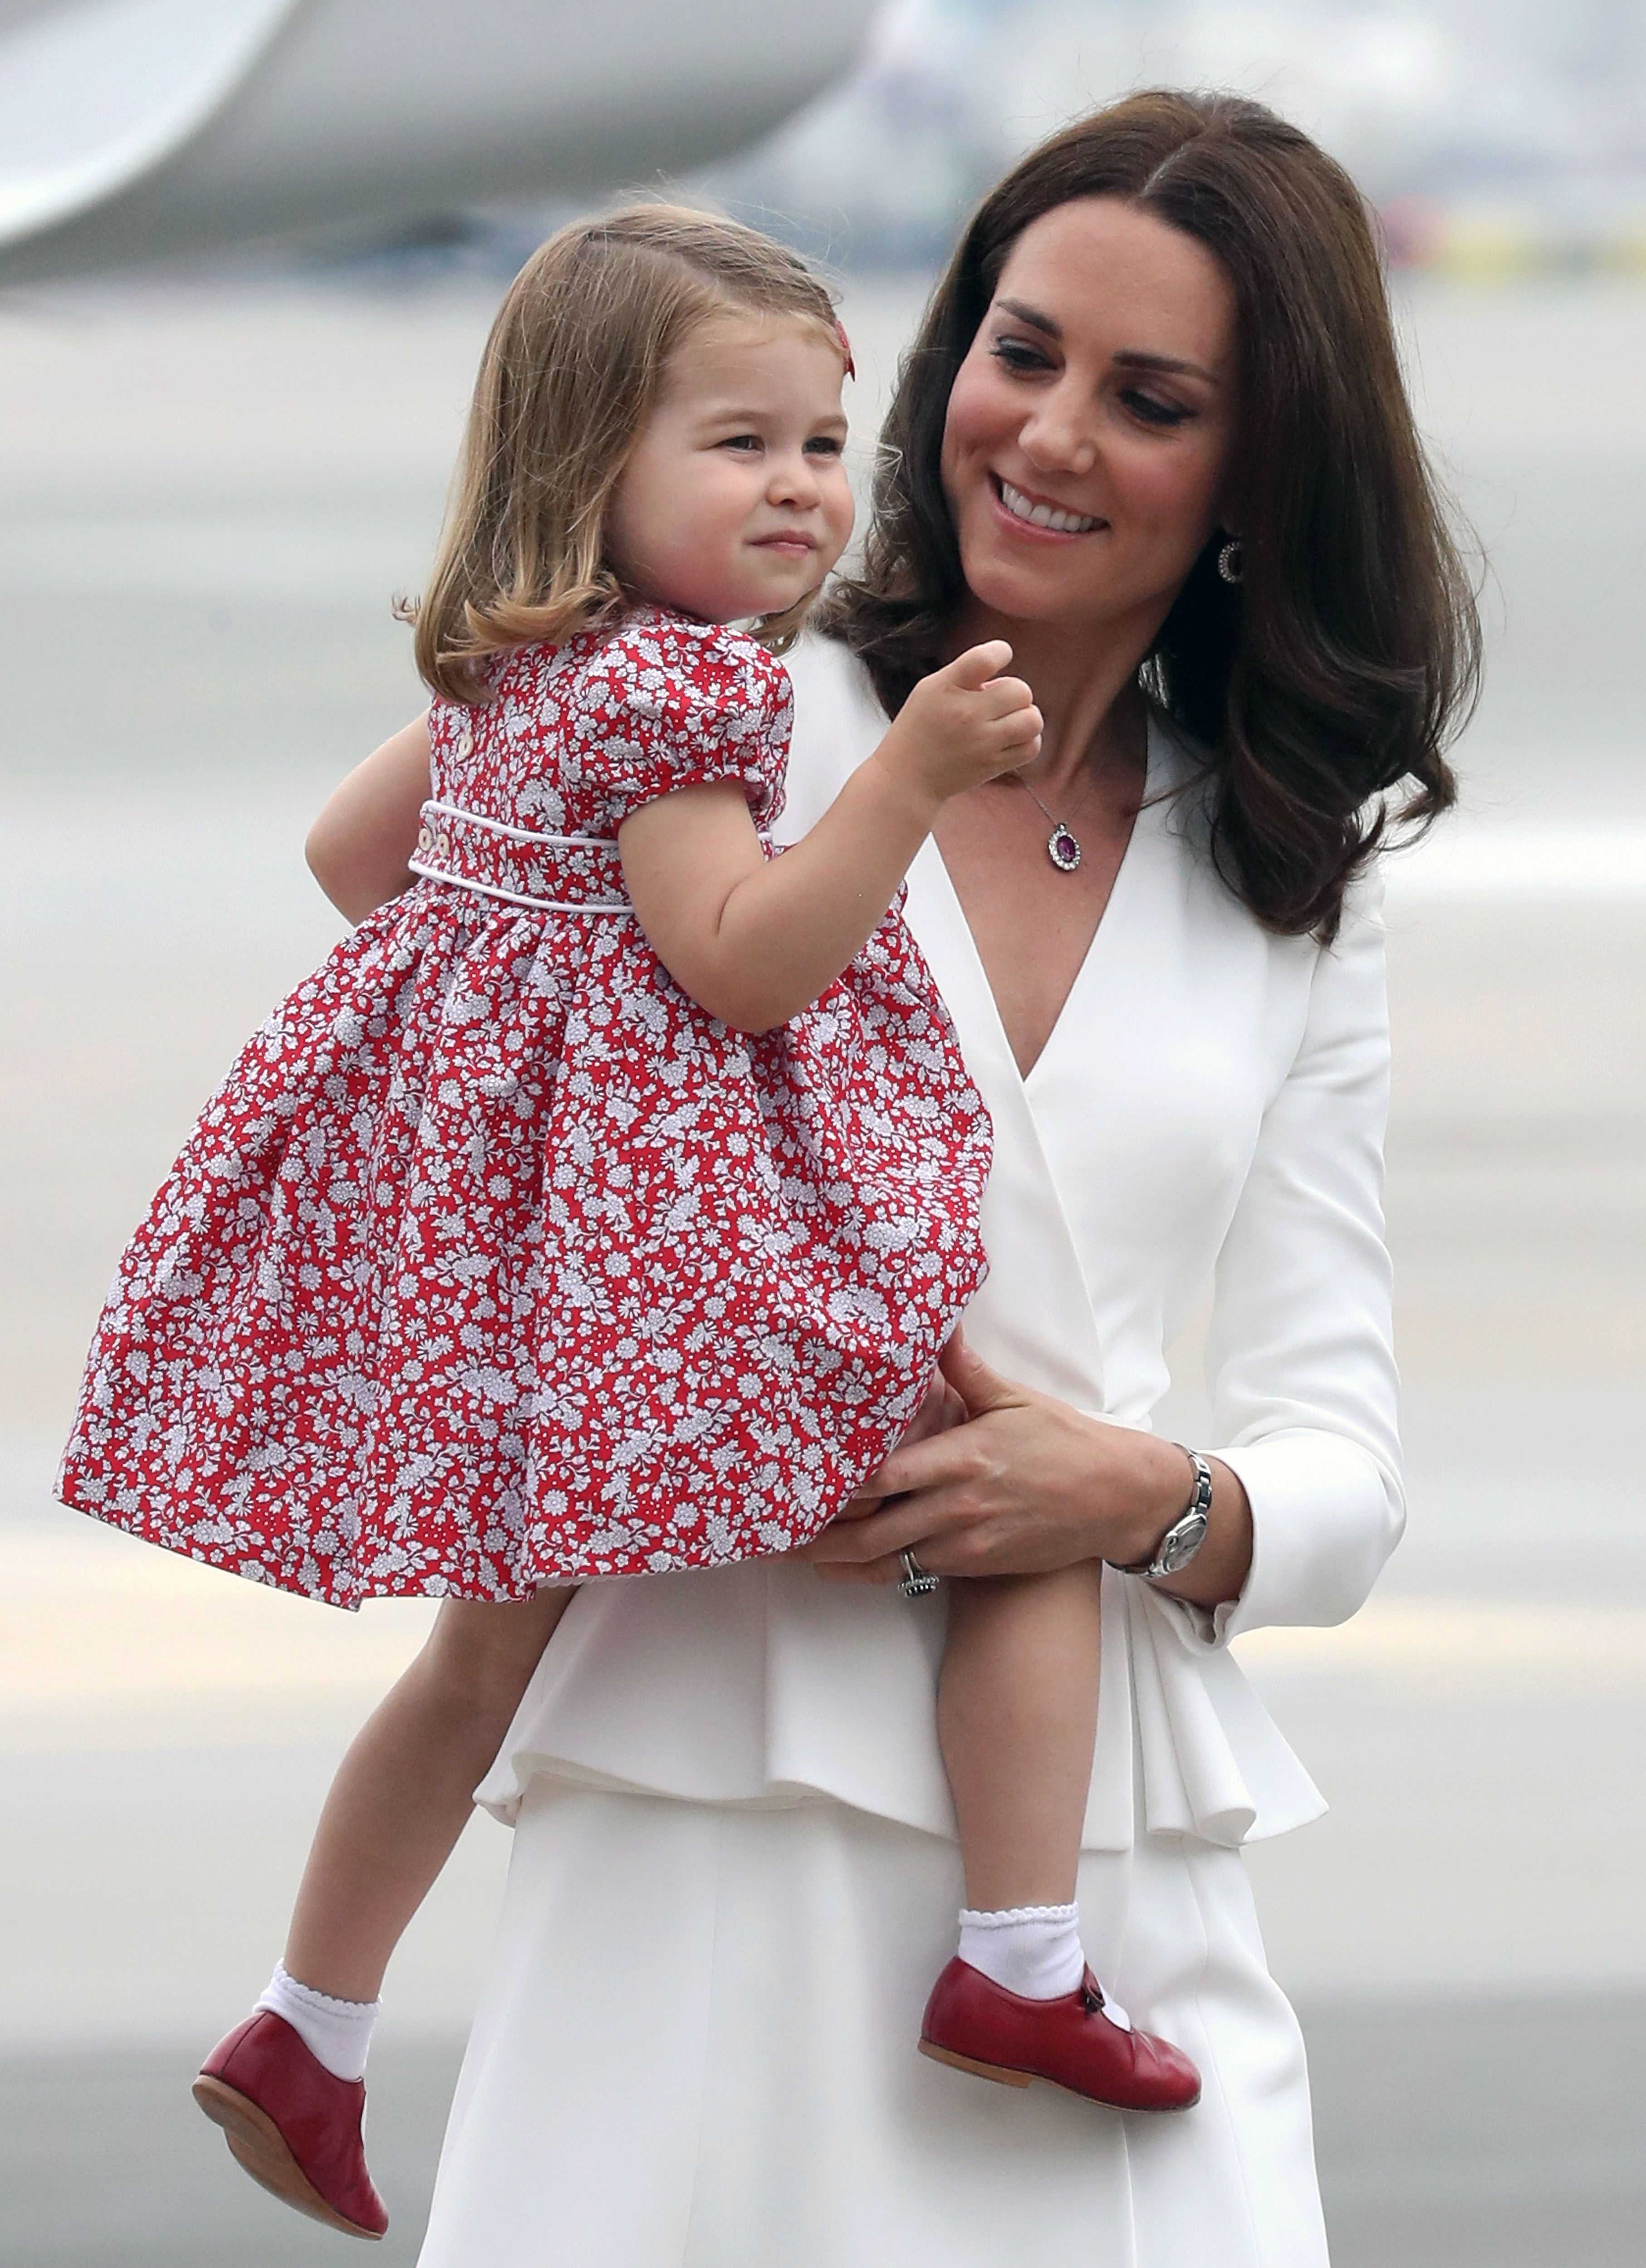 Kate Middleton Releases One of Her Favorite Personal Photos of Princess Charlotte